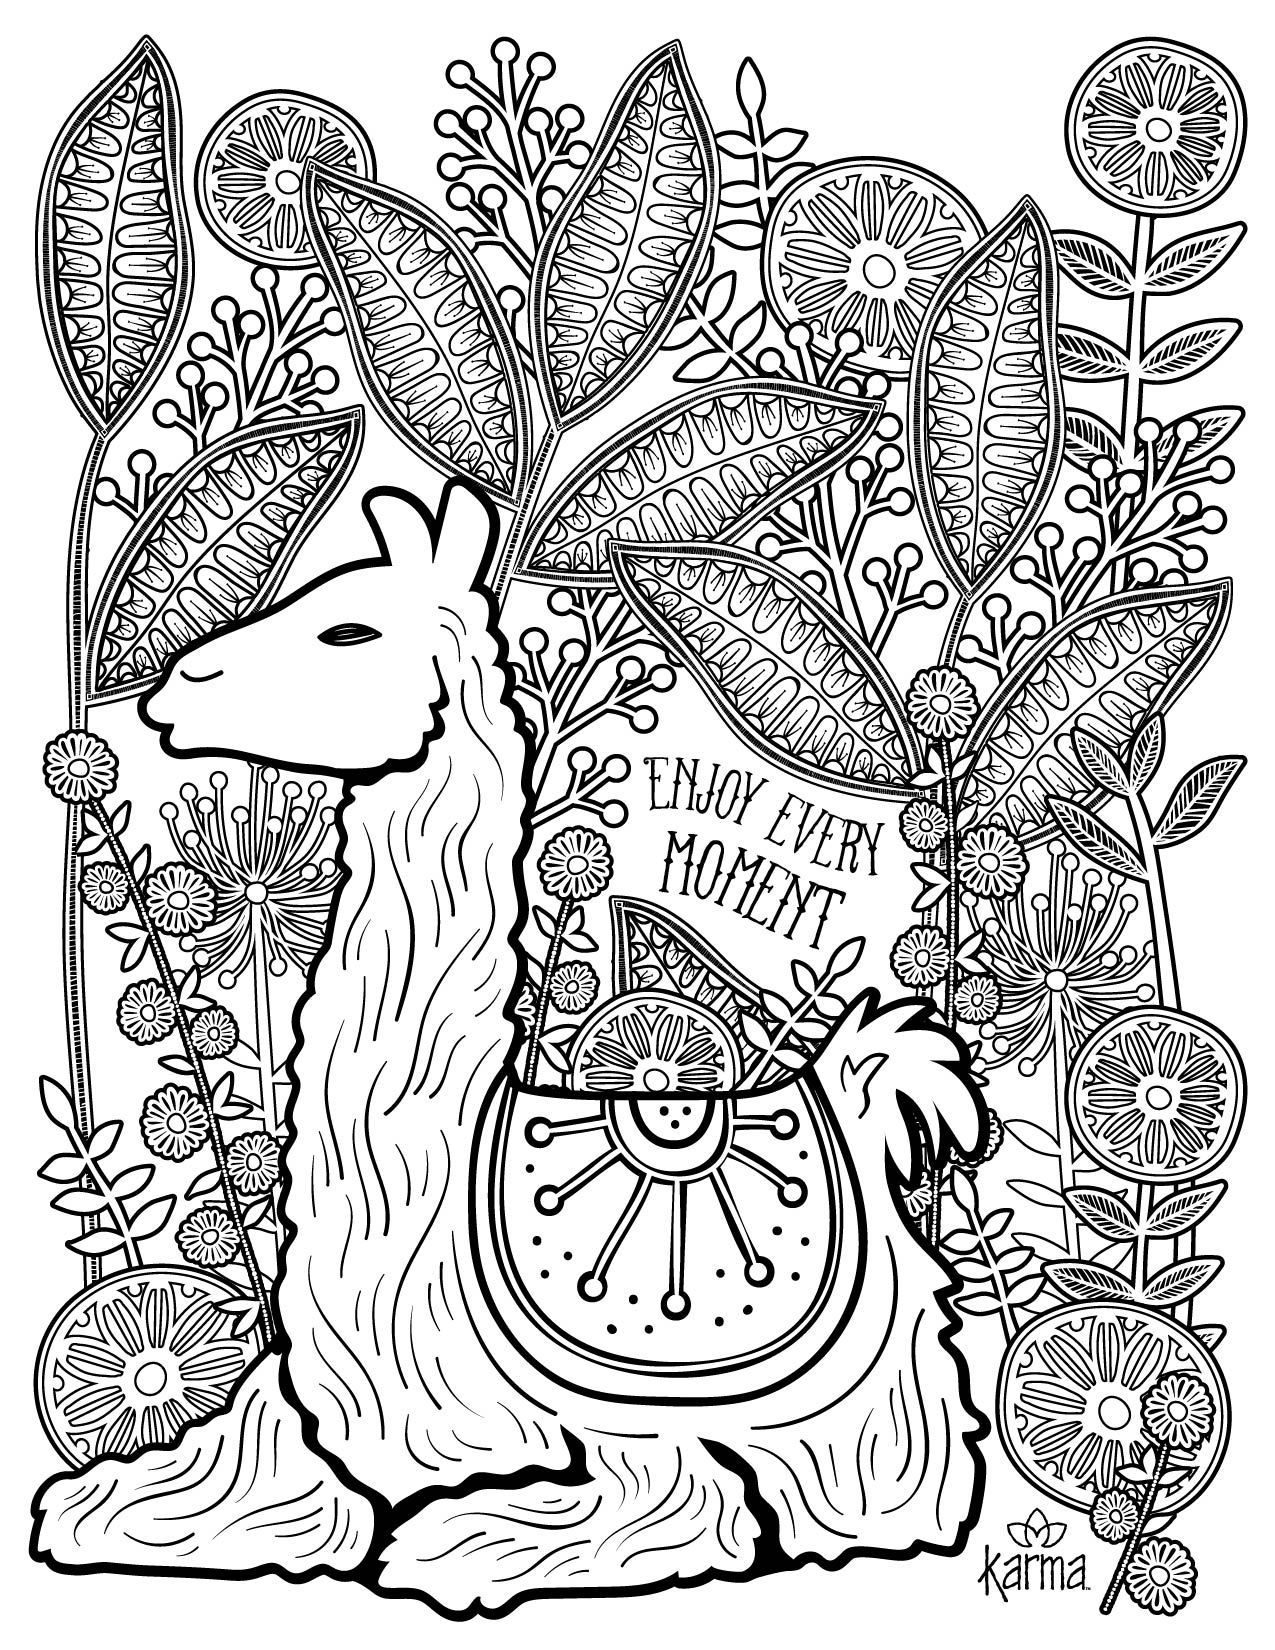 Llama Free and printable coloring